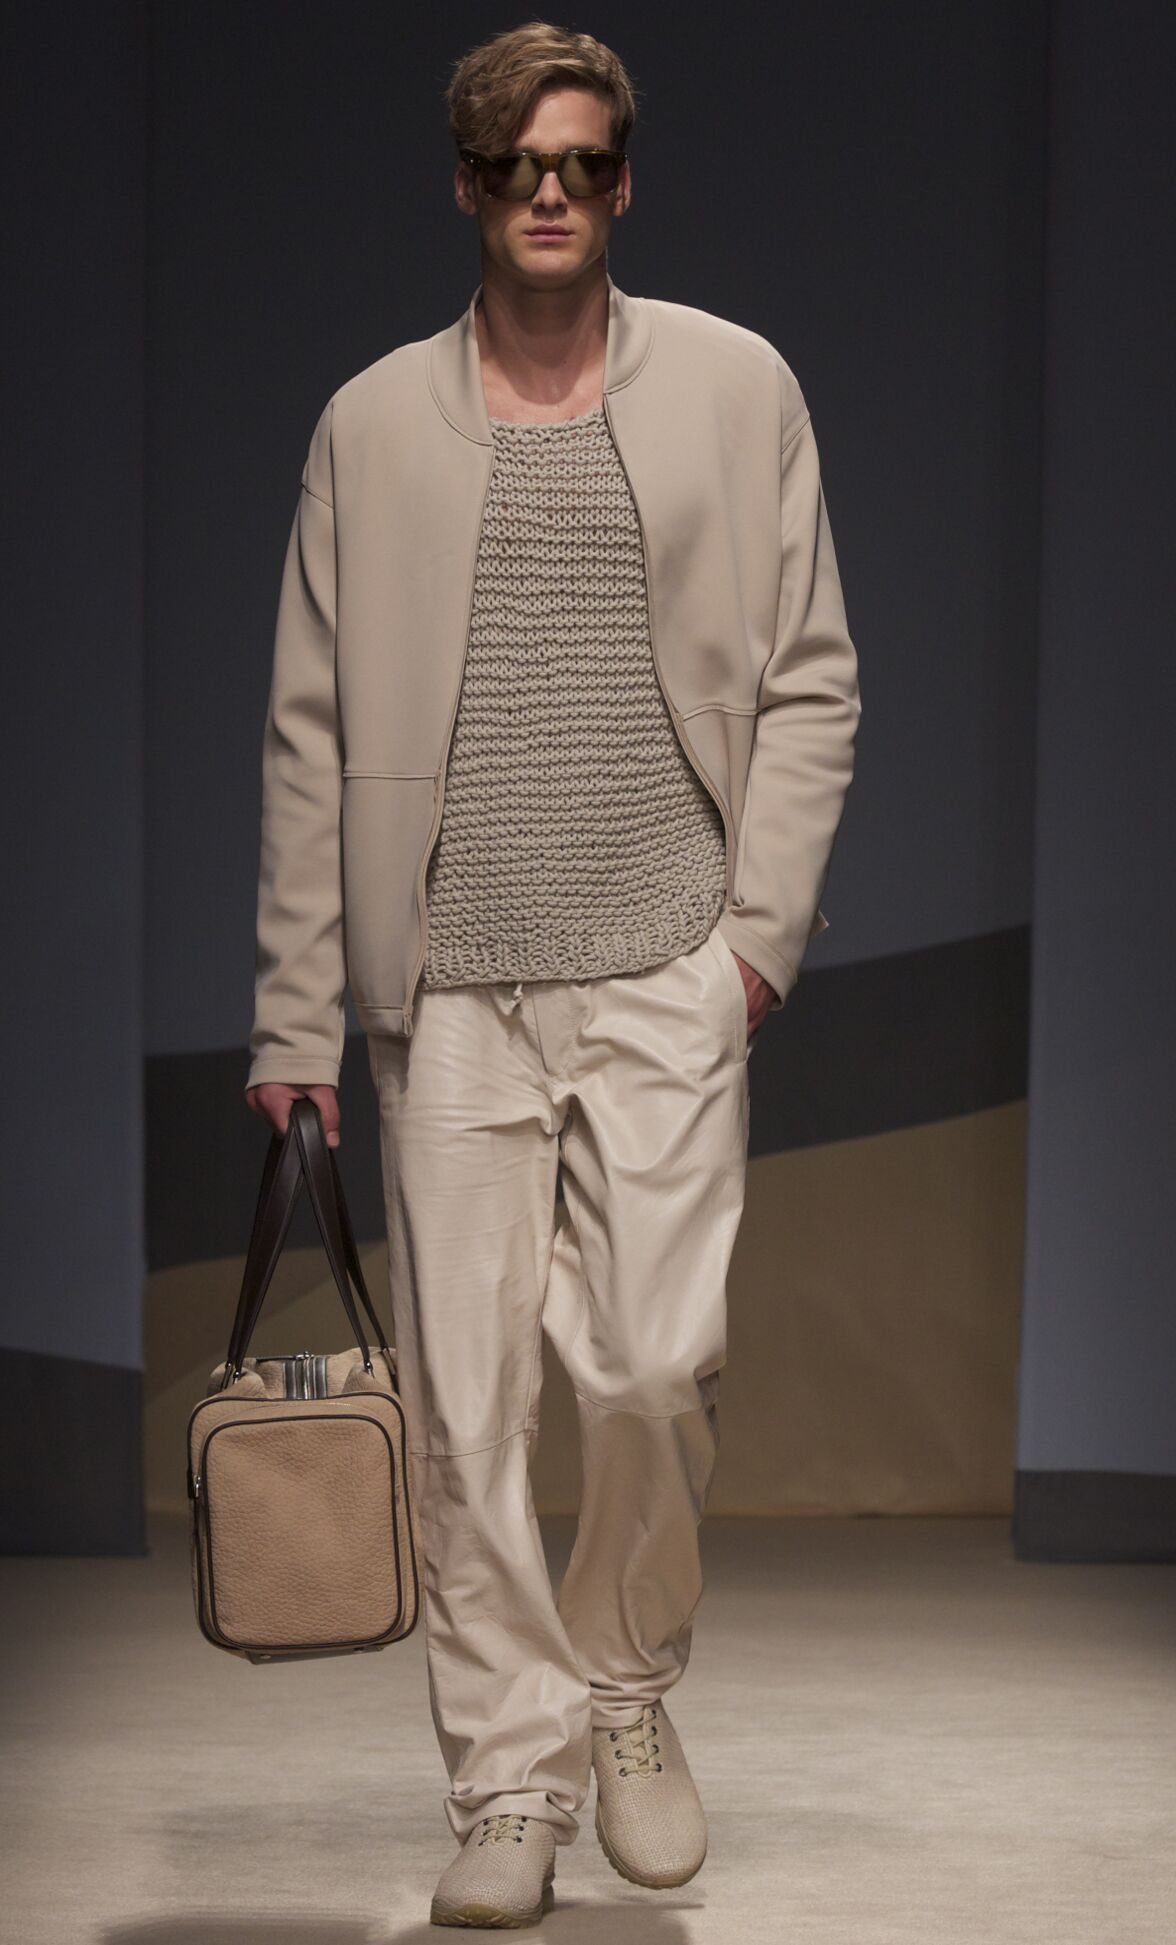 Summer Trussardi Trends 2014 Man